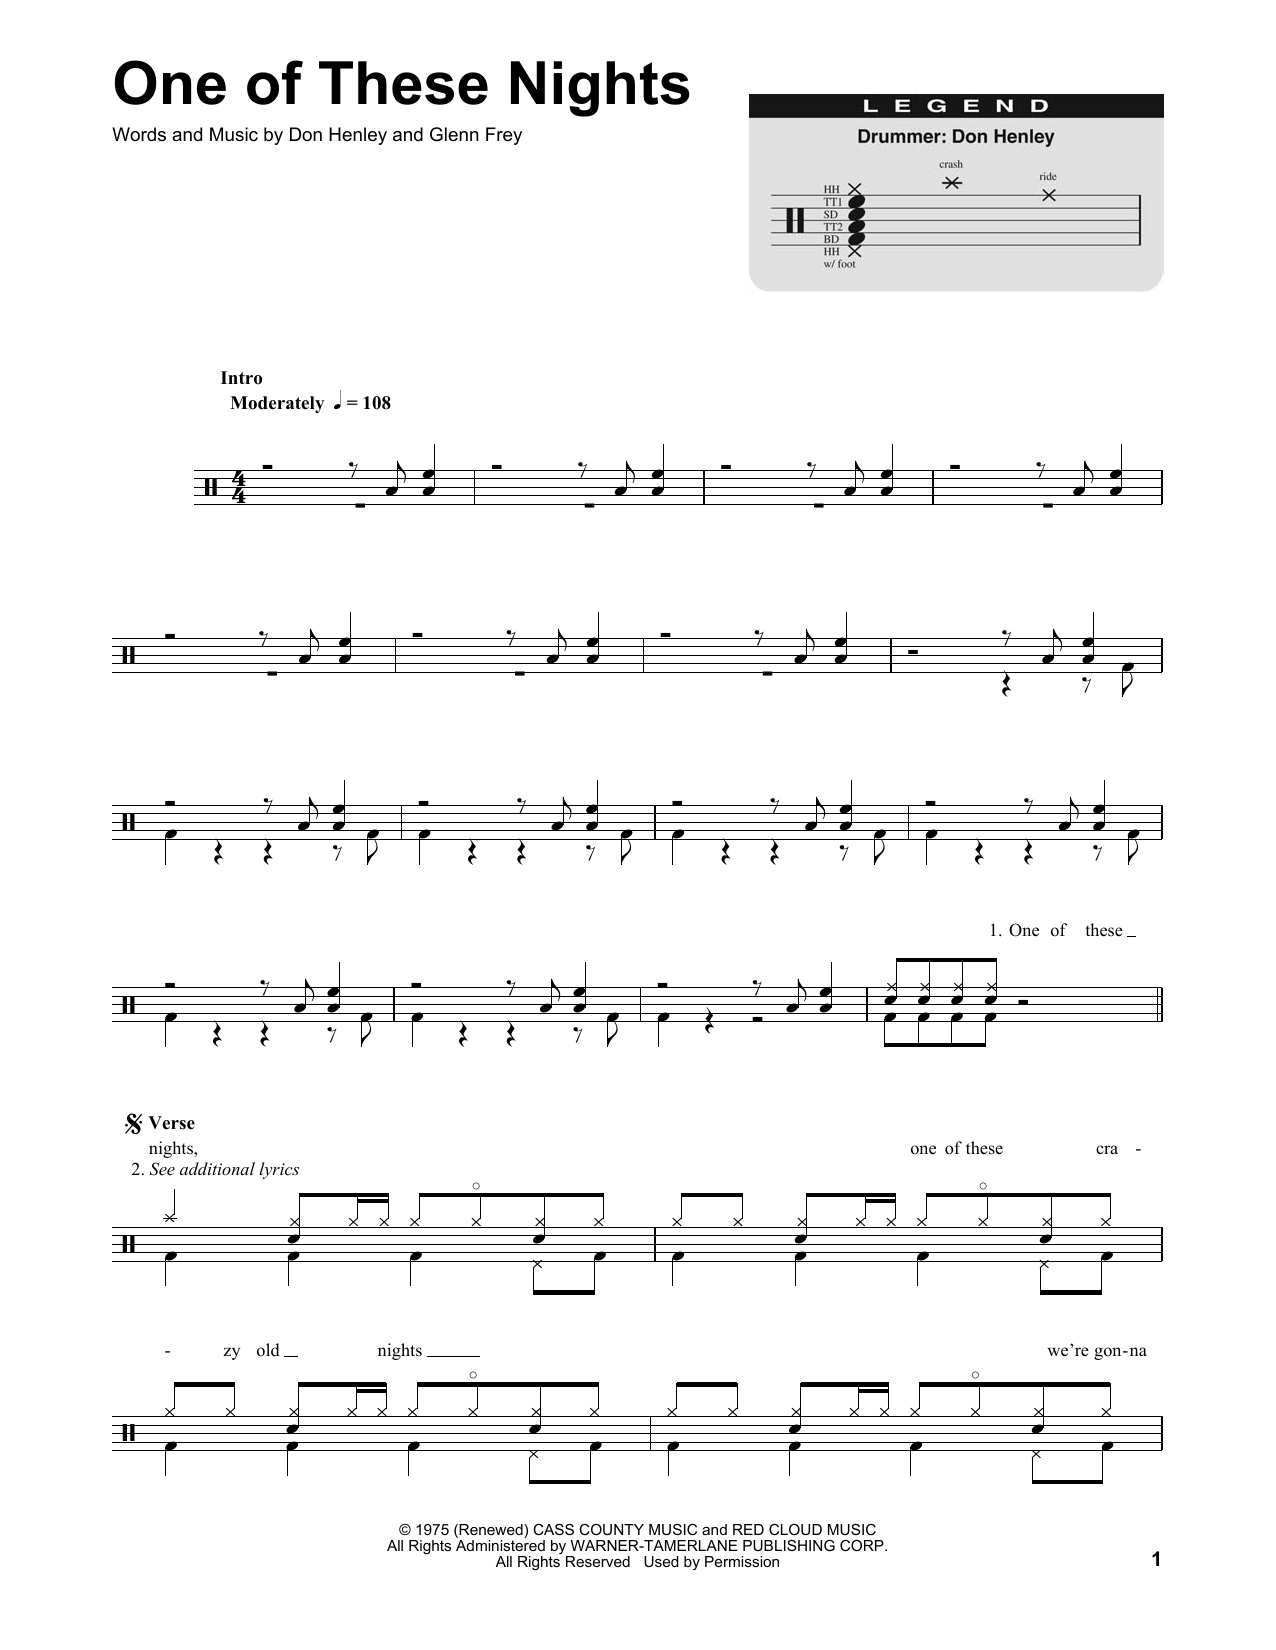 One of these nights sheet music direct sheet preview hexwebz Images